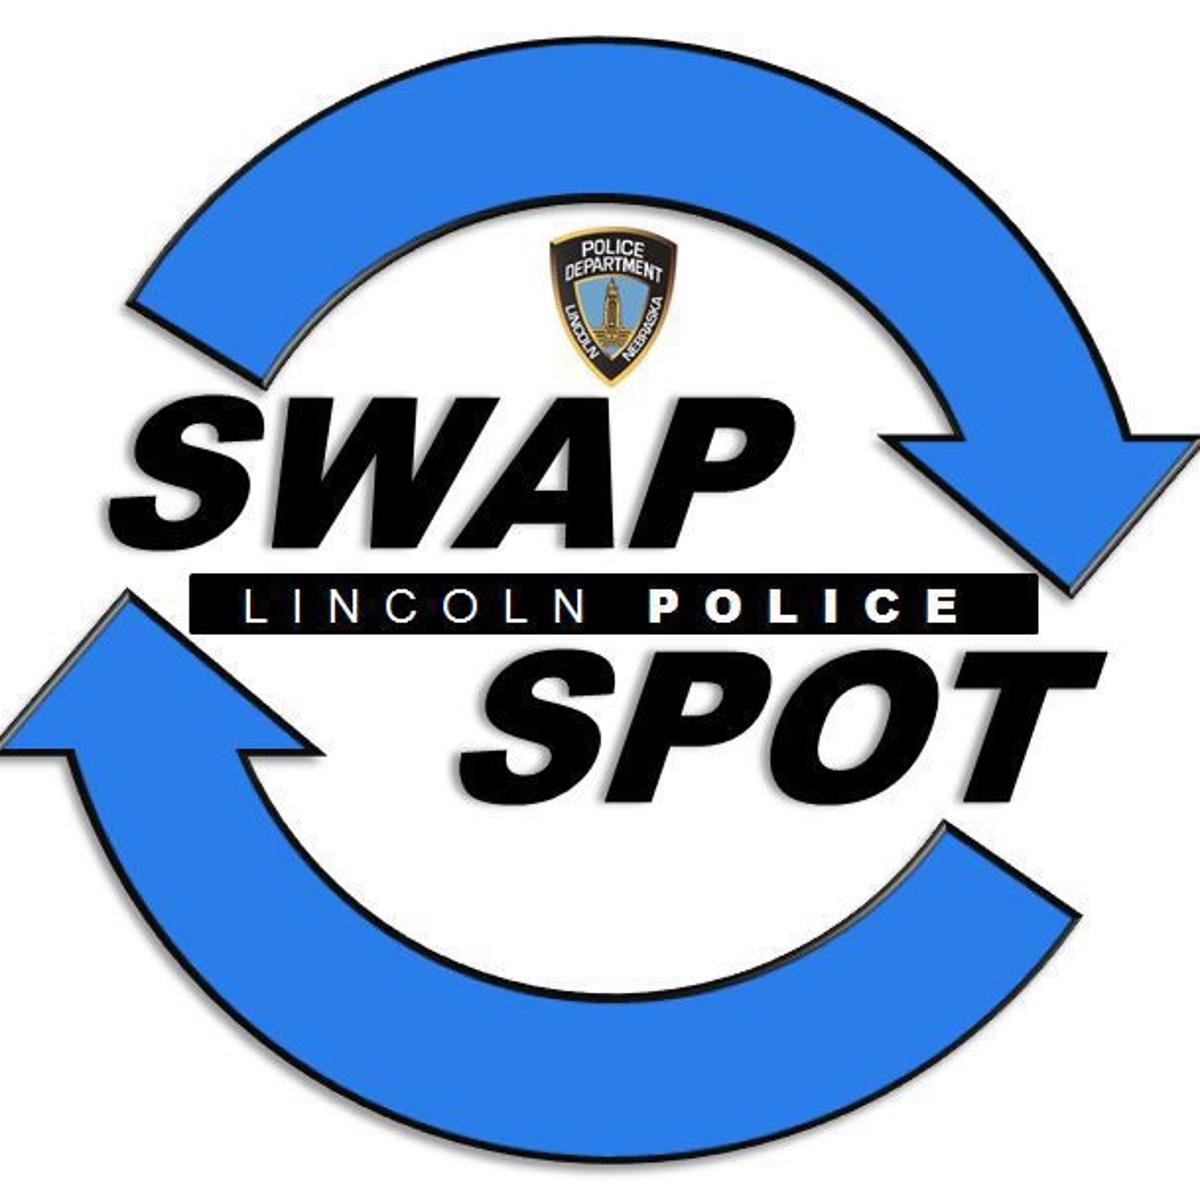 Lincoln police create meeting space for online trades, child